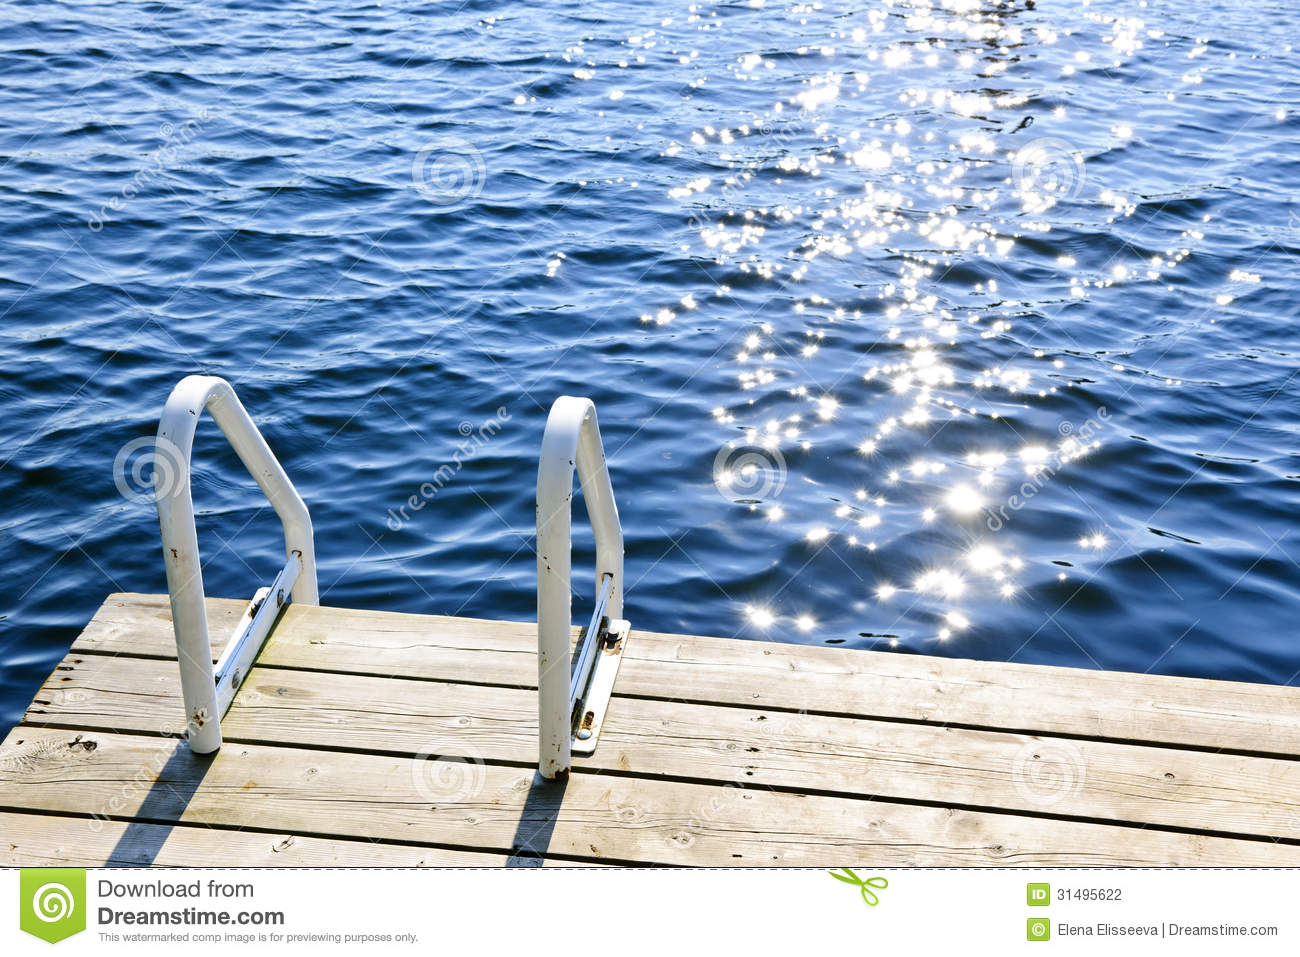 Vacation Cottage Plans Dock On Summer Lake With Sparkling Water Stock Photo